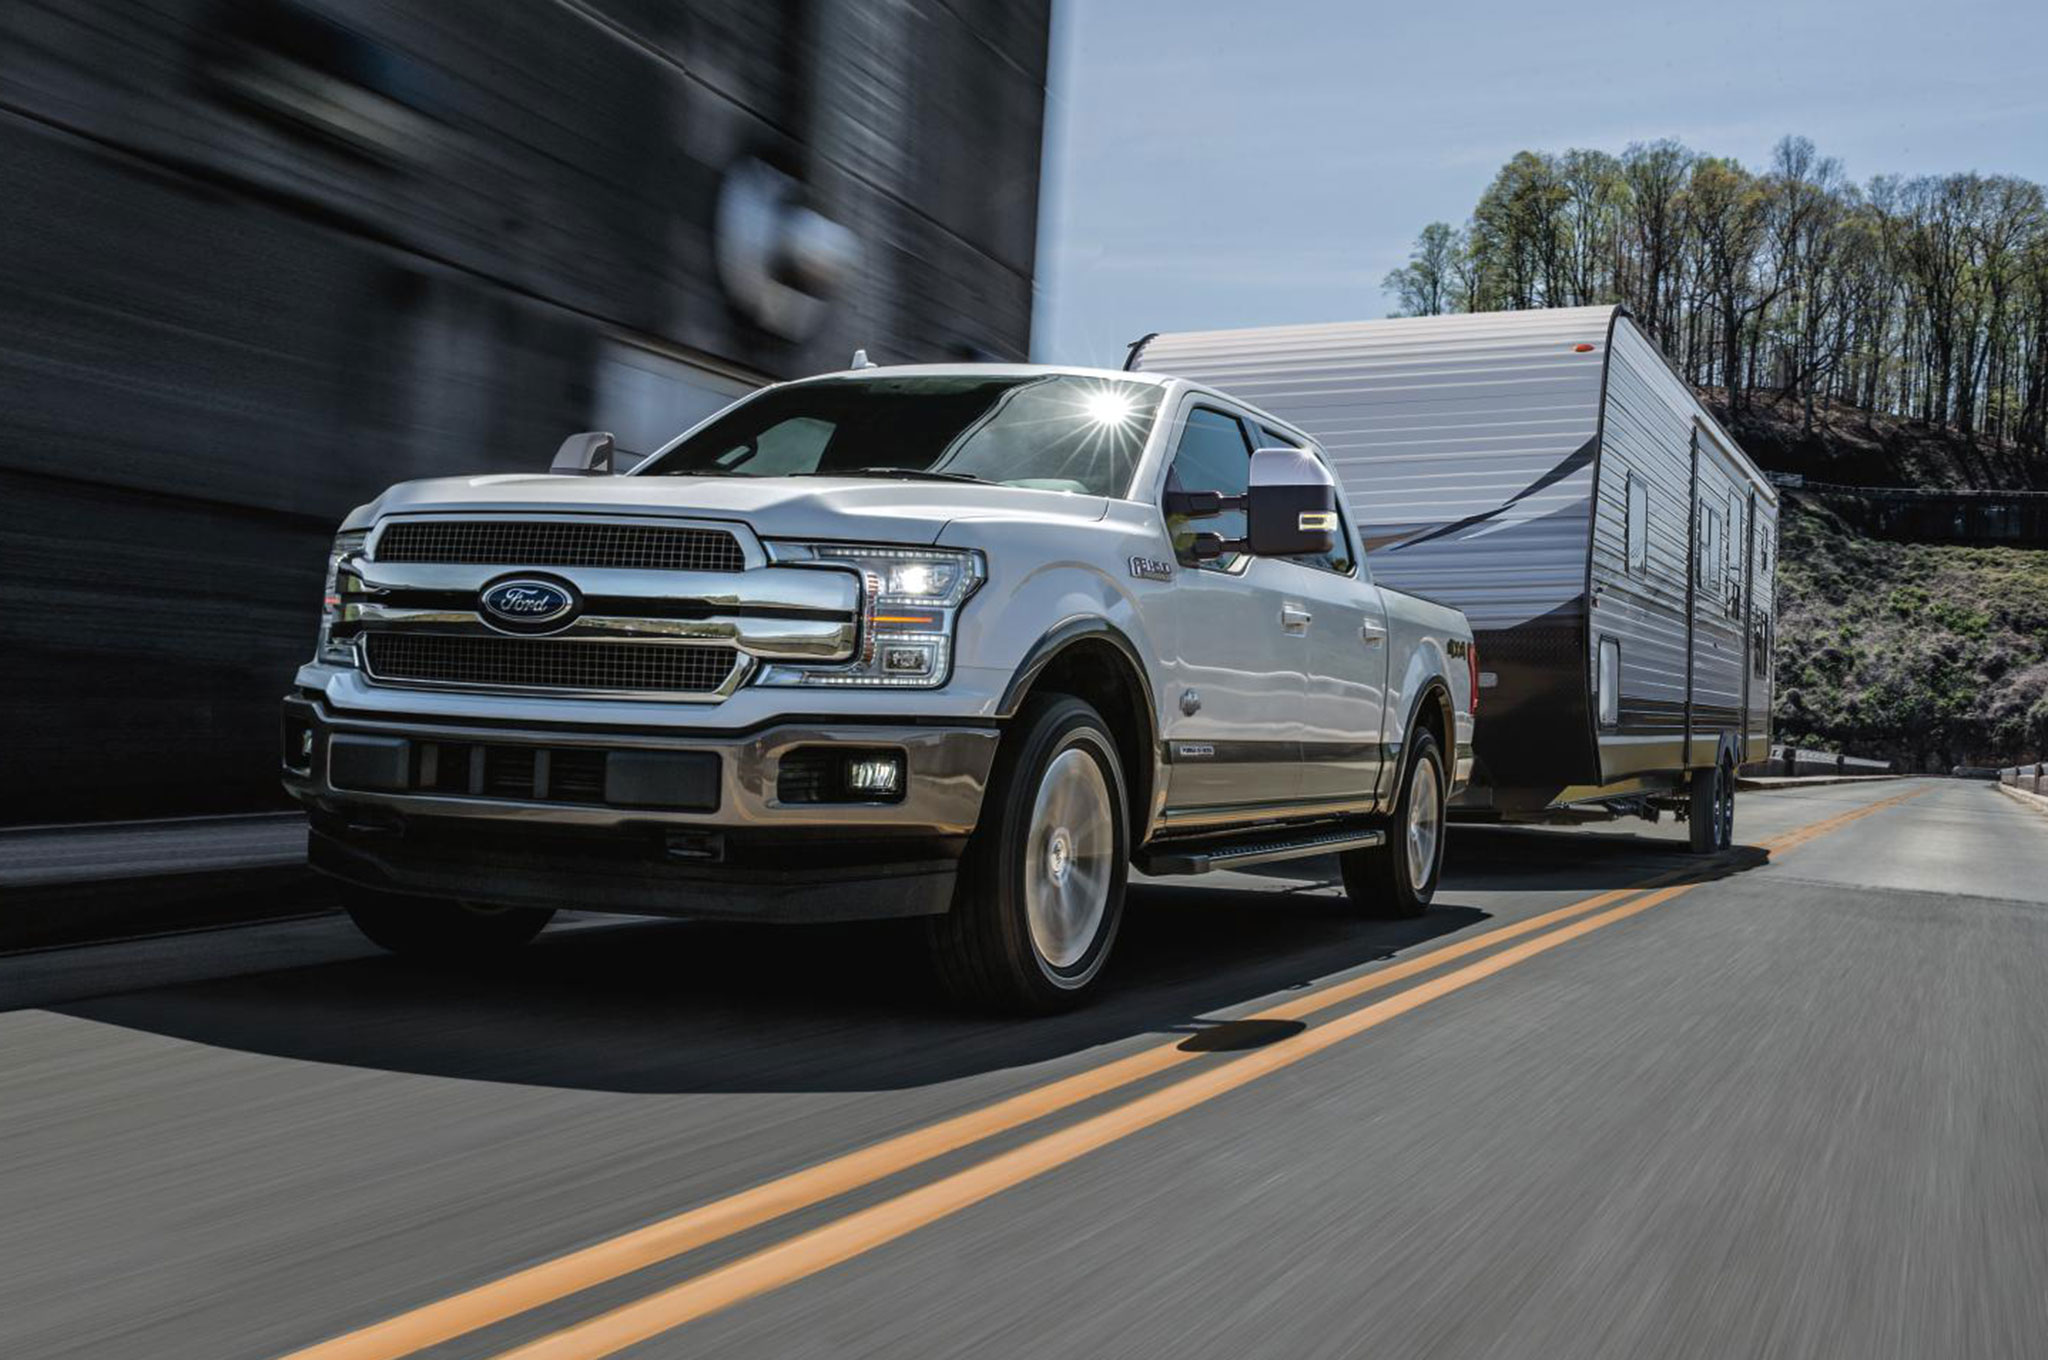 2018 Ford F 150 Diesel In White